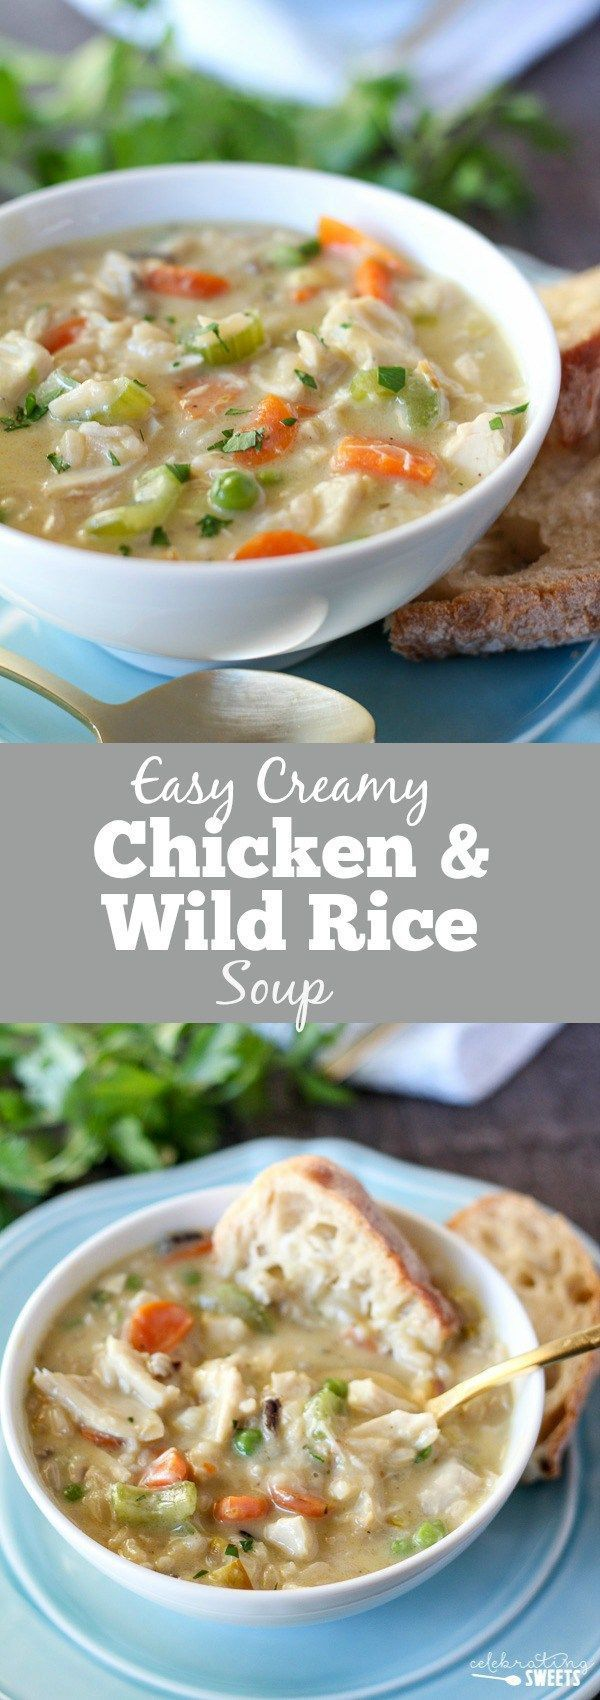 Creamy Chicken and Wild Rice Soup - The easiest homemade Creamy Chicken and Wild Rice Soup! Filled with chicken, vegetables, rice and a touch of cream this flavorful soup is ready in 30 minutes.